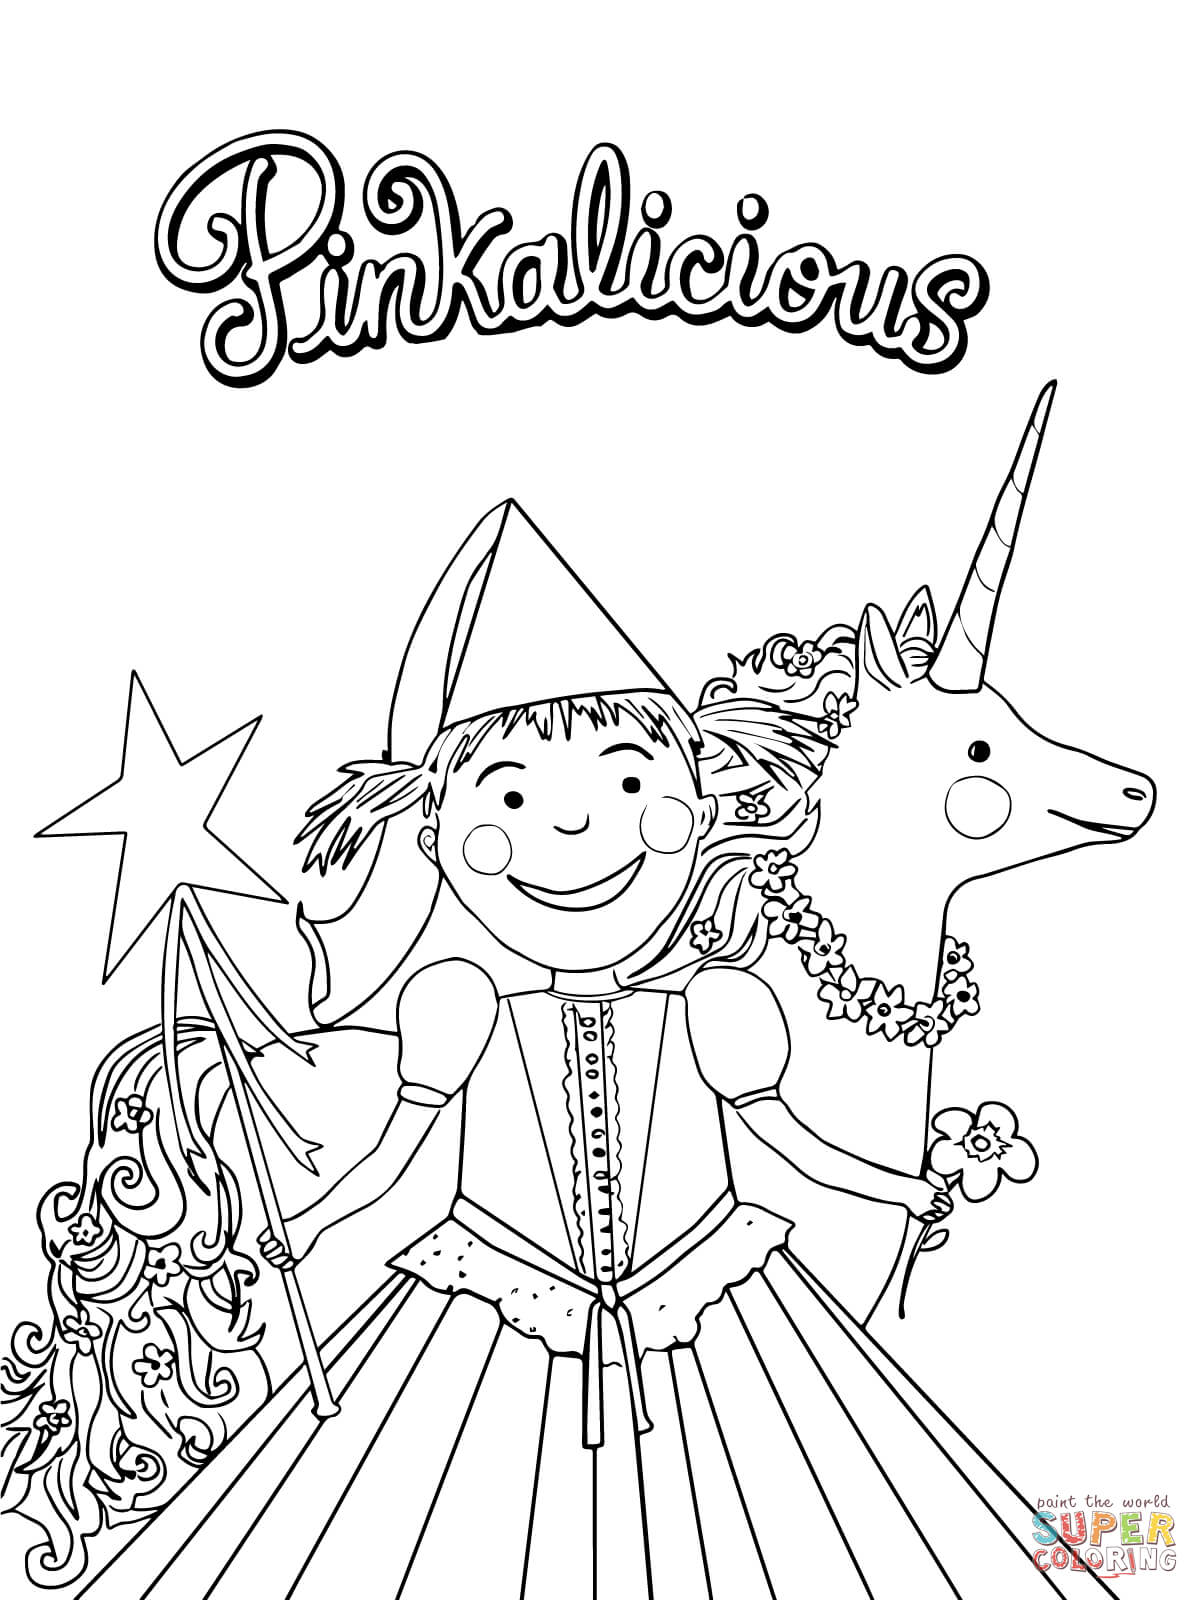 free downloadable coloring pages | Pinkalicious coloring pages to download and print for free